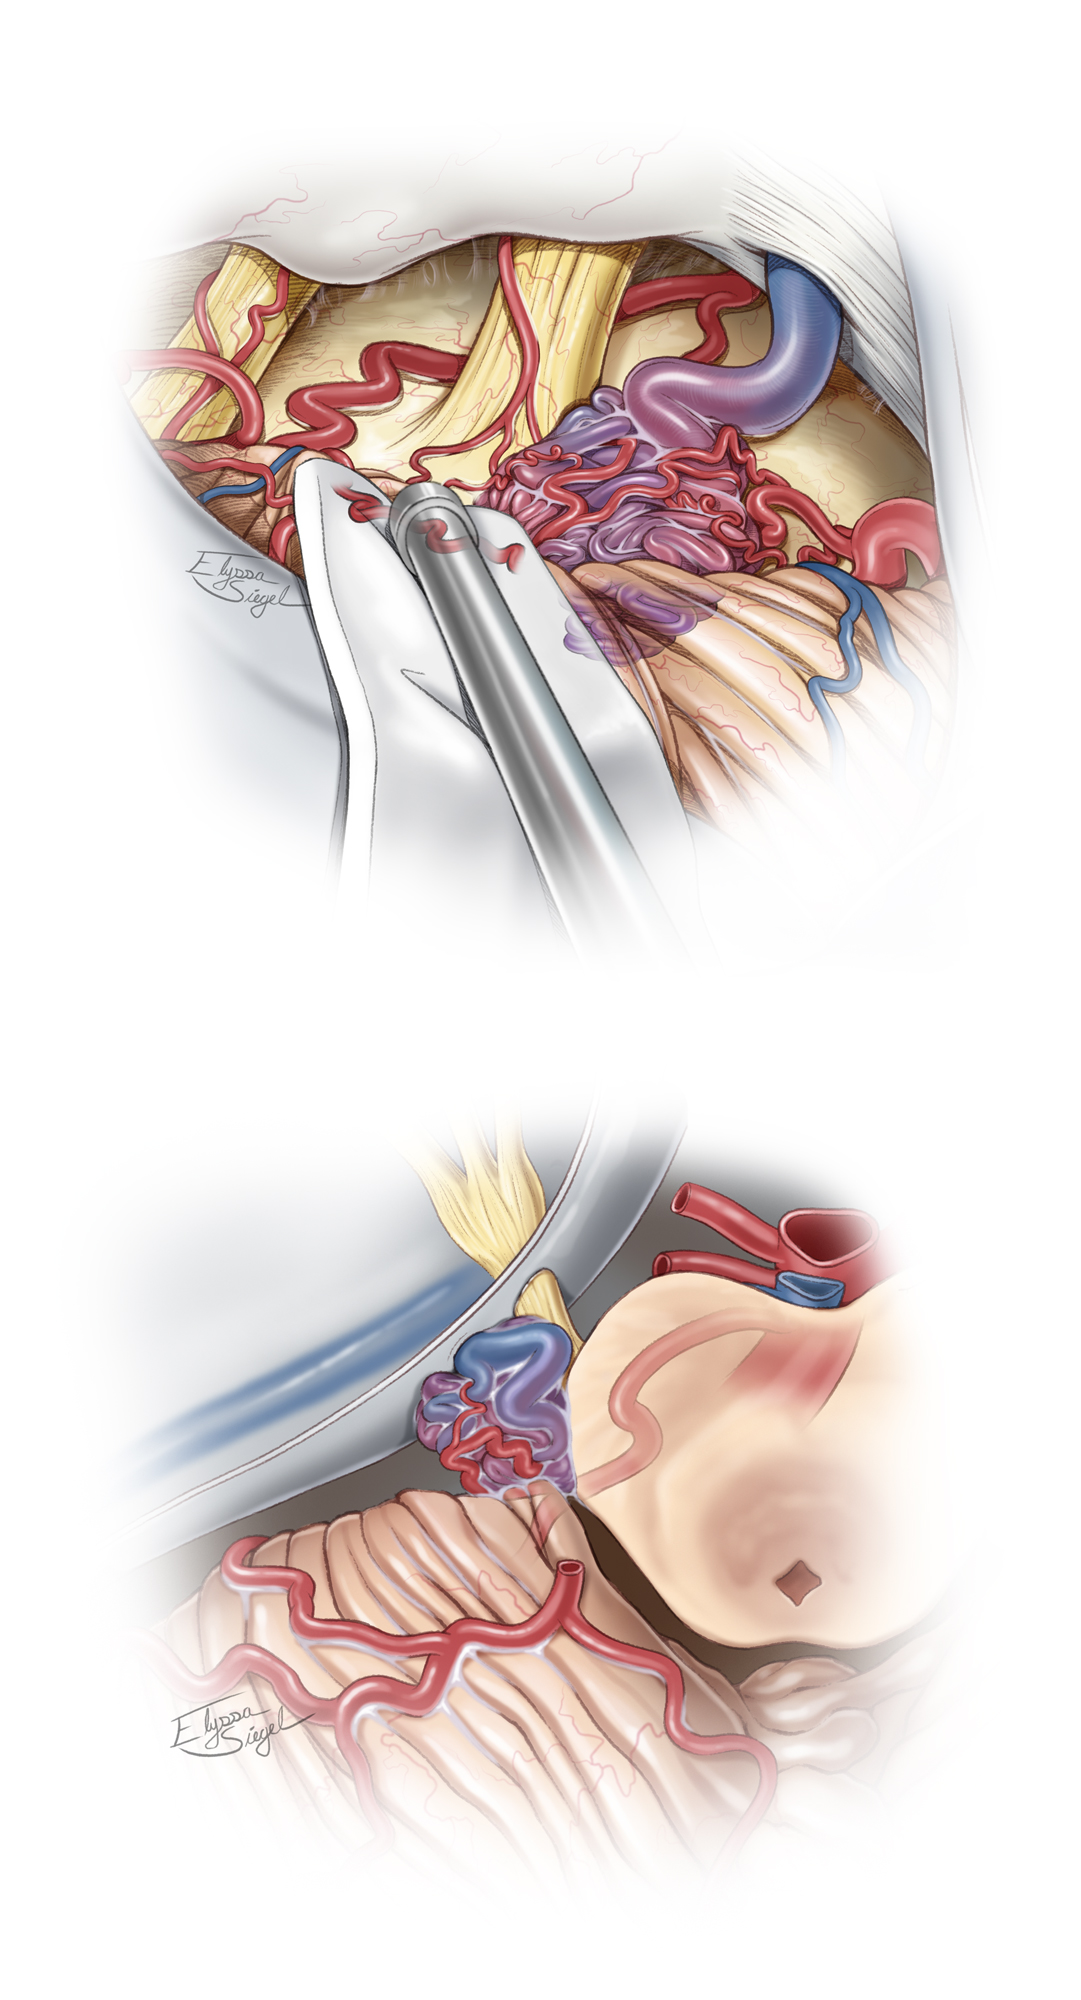 Figure 12: A lateral pontine AVM is demonstrated (surgeon's view, top image). Note the relationship of the lesion to the trigeminal nerve root entry zone. Compared to anterior pontine AVM, the more lateral location of the lesion improves the safety of its resection. The AICA feeding vessels are often hidden on the other side of the nidus away from the surgeon, making their control challenging. An axial sketch (bottom image) further illustrates the pathoanatomy.